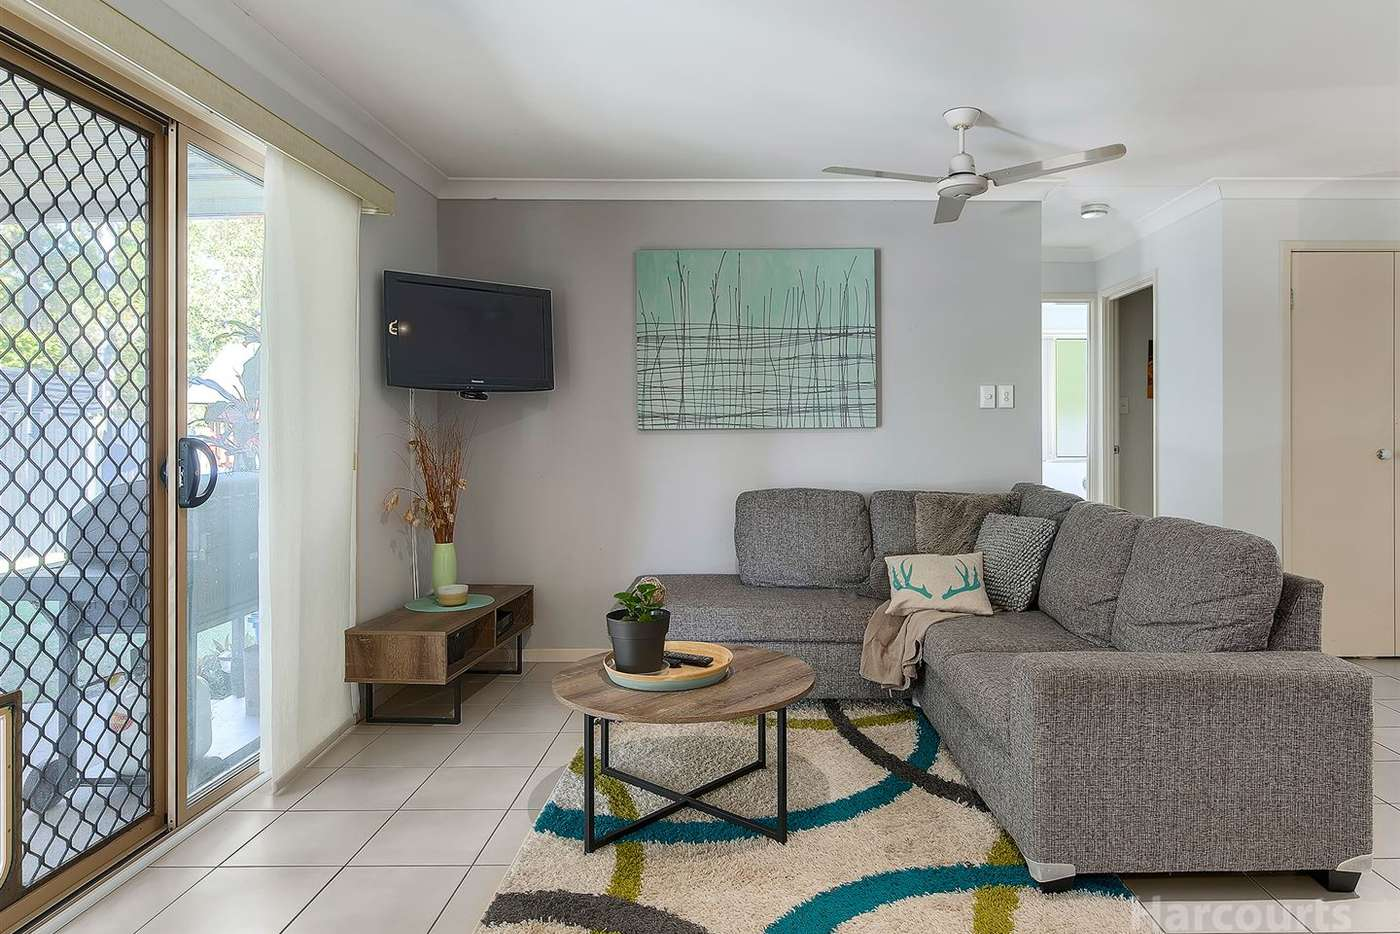 Sixth view of Homely house listing, 17 Mary Jane Ct, Joyner QLD 4500